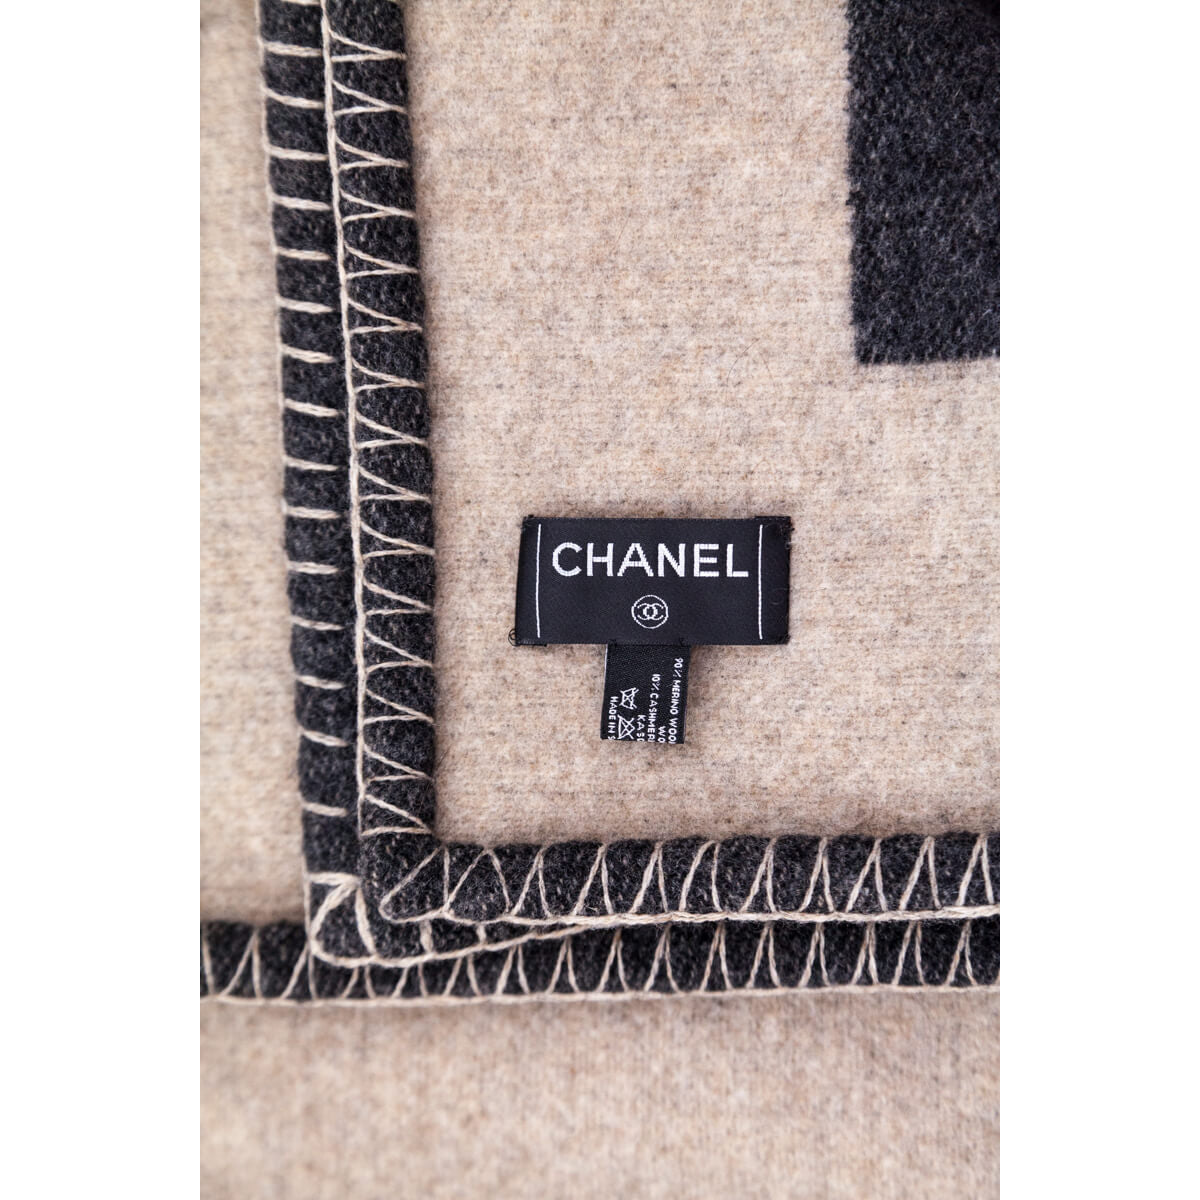 Image of: Chanel Taupe And Black Wool And Cashmere Cc Blanket Designer Blanket